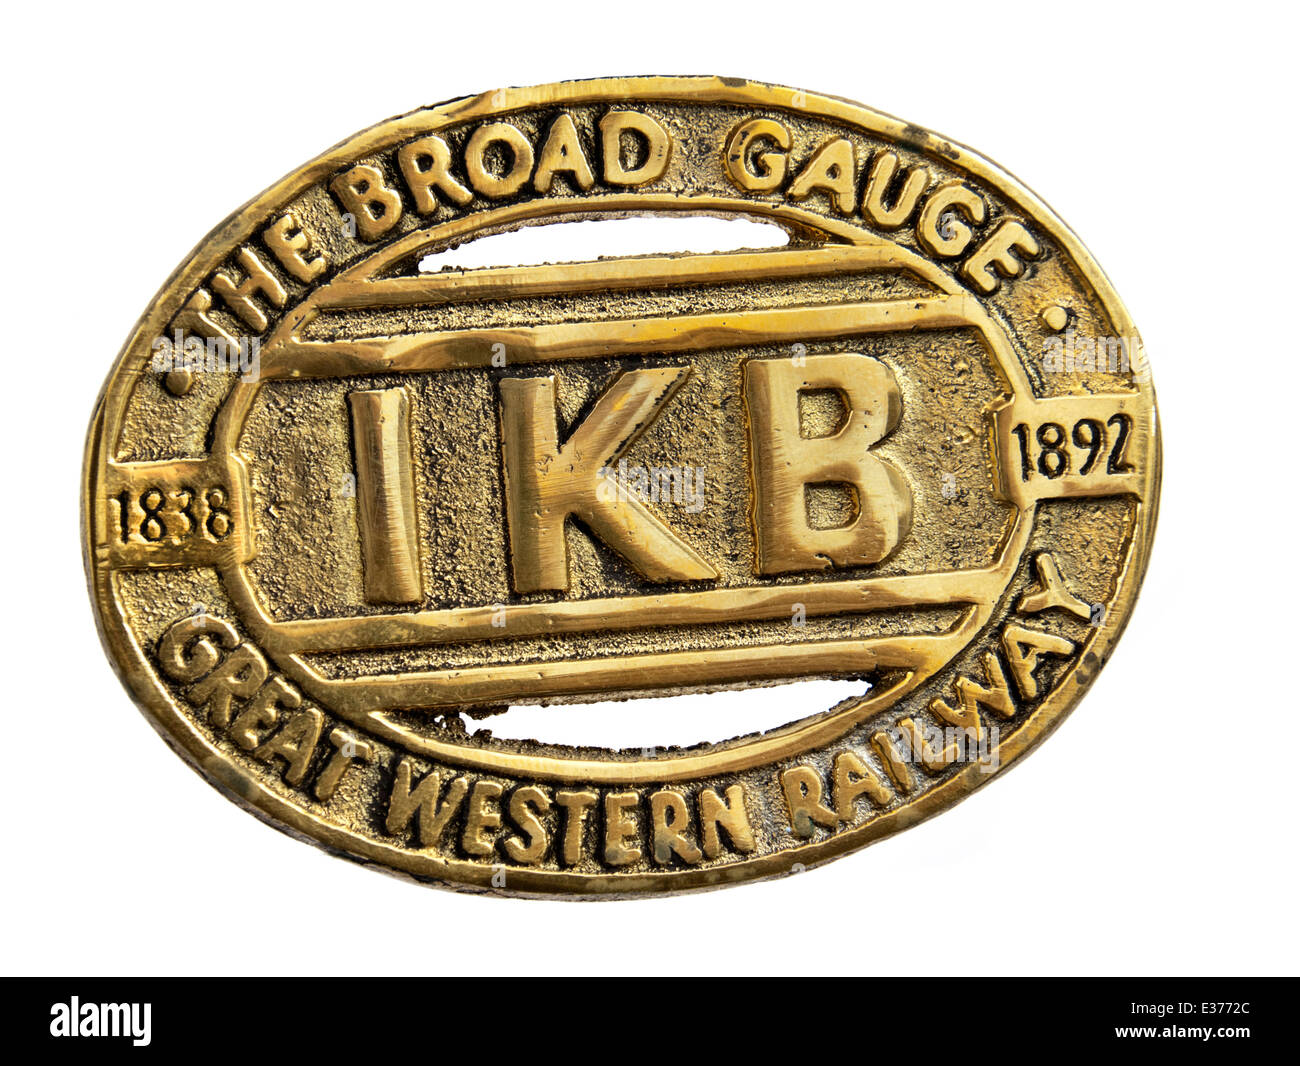 Antique brass plate, commemorating the life of the Broad Gauge railway track standard from 1838 to 1892. - Stock Image